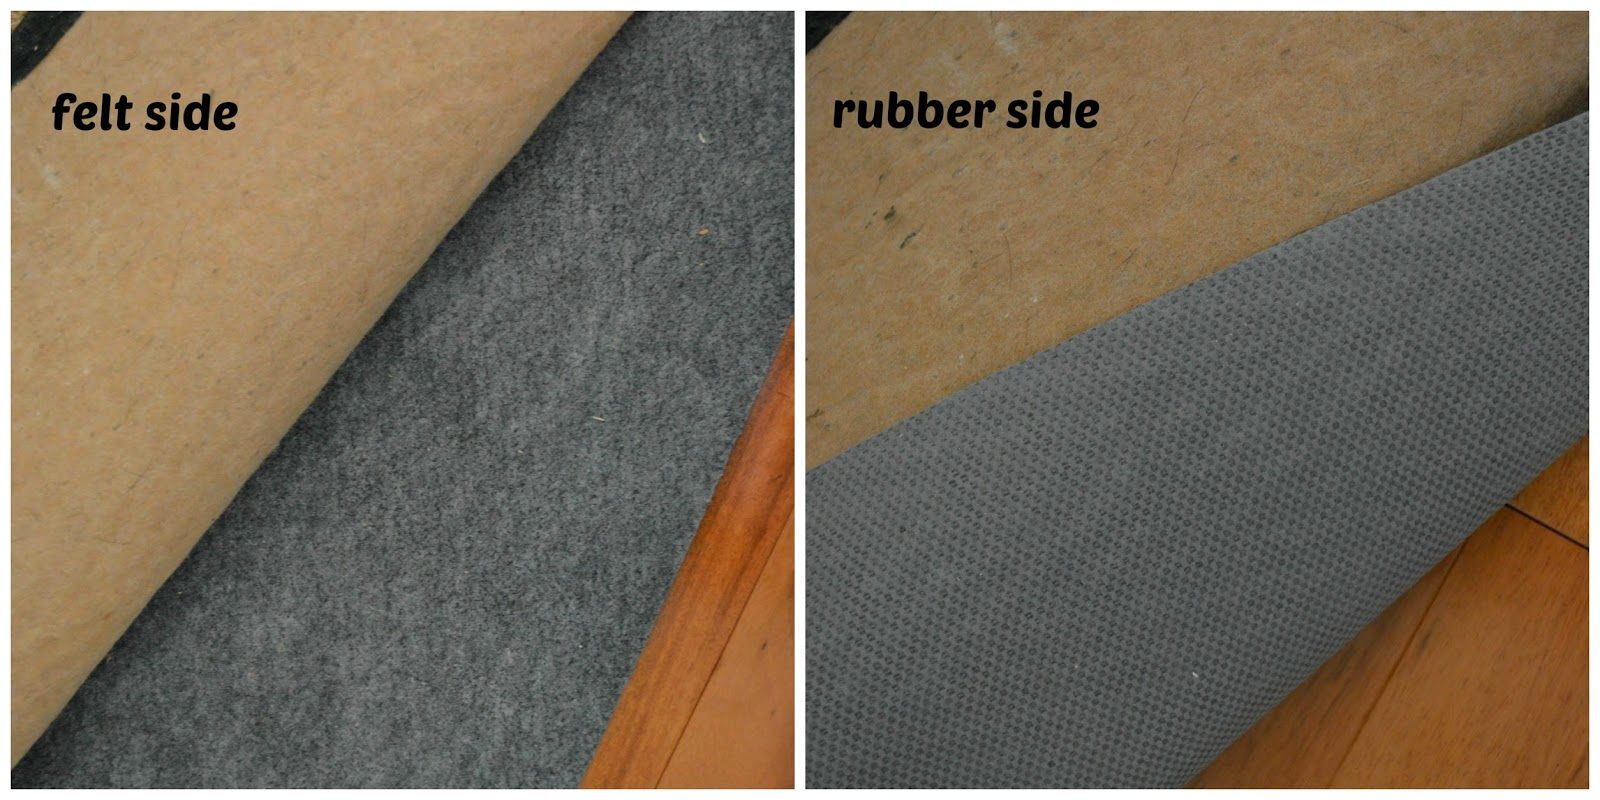 Rubber Rug Pads Light Brown Rubber Rug Pads Thinny Rubber Rug Pads Browny Rug  Pad